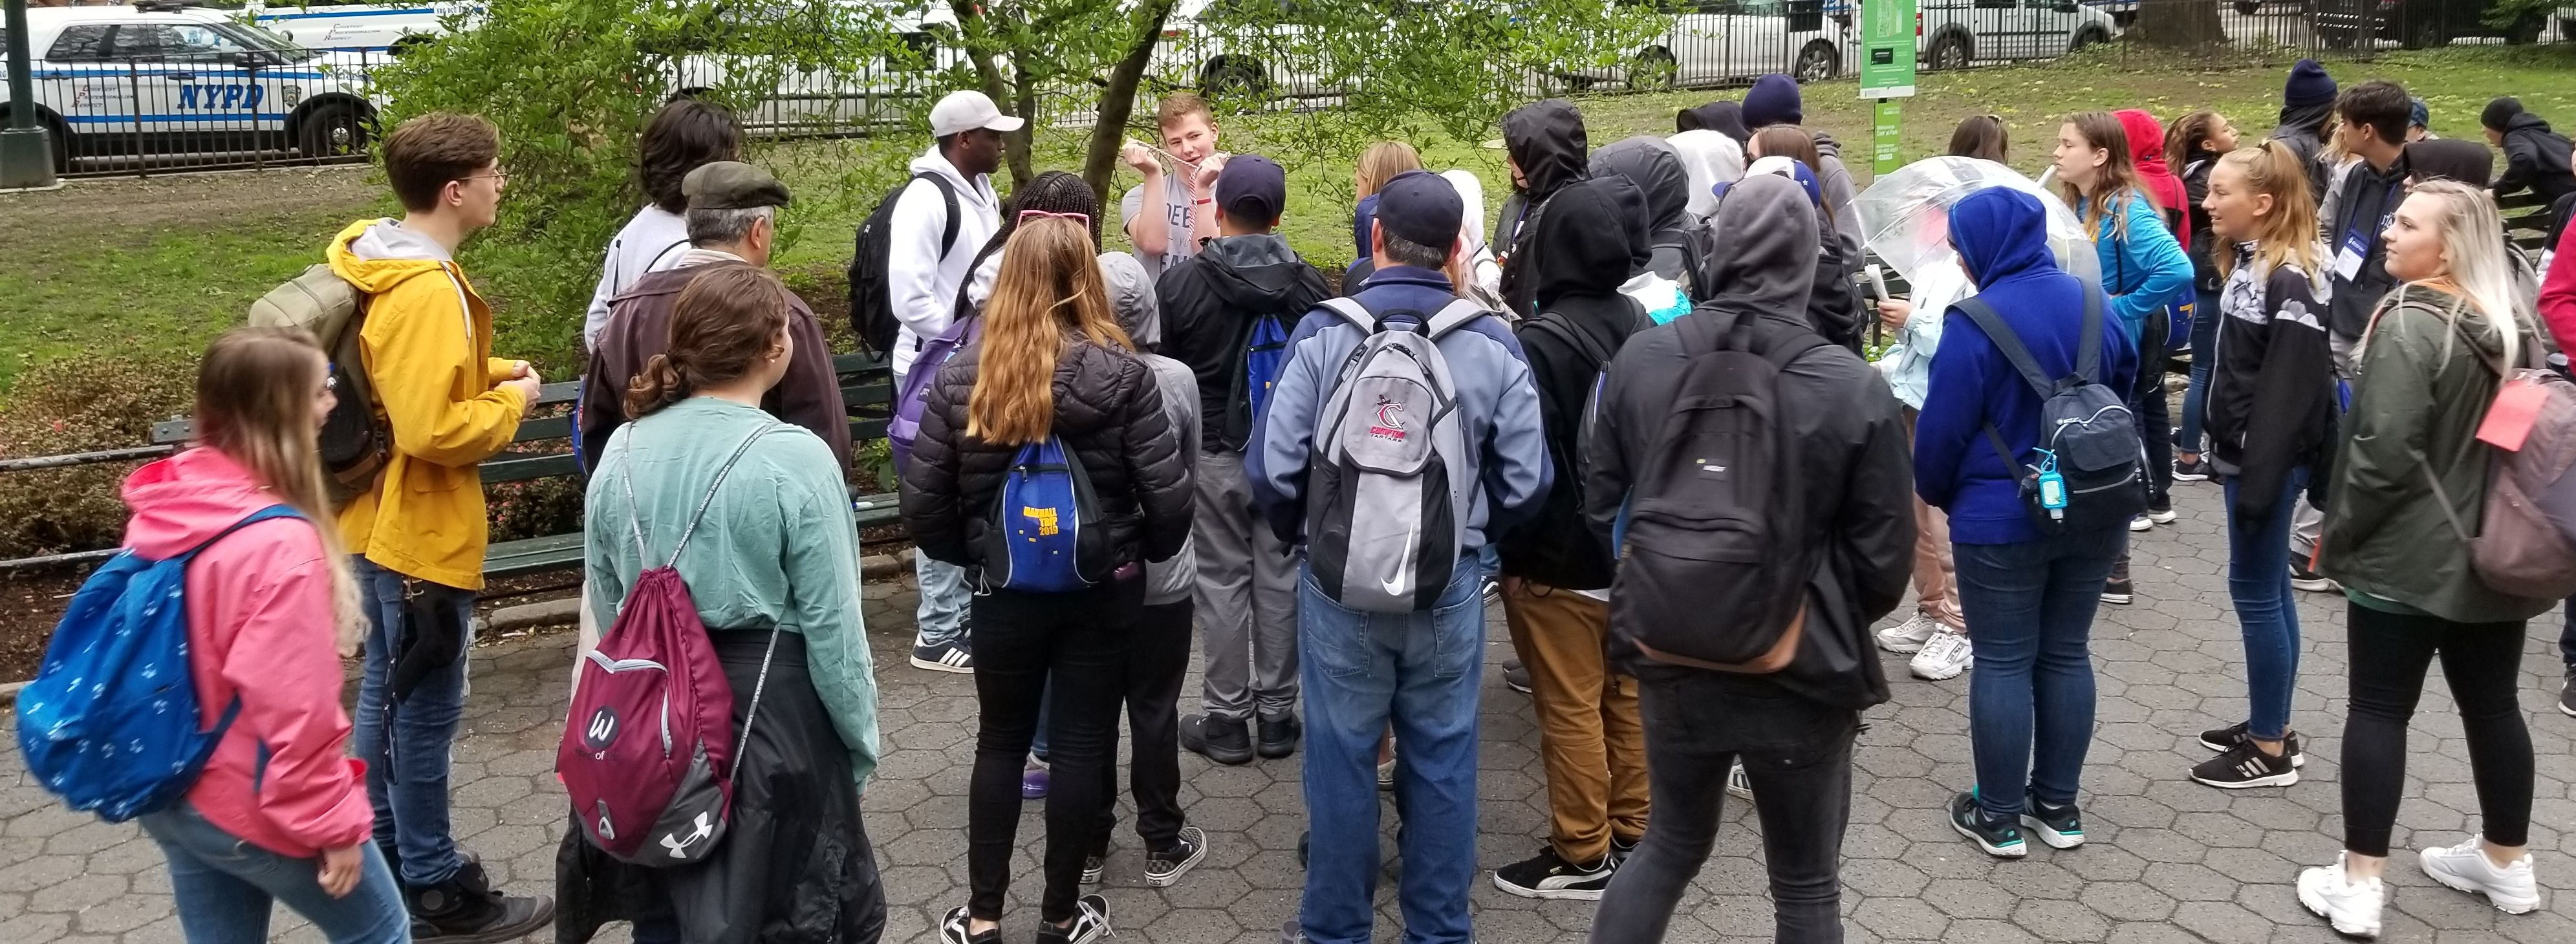 Ben found a high school group (and their teachers) in Central Park and turned the Open Air Campaigners famous 'rope trick' into an impromptu open air gospel message!